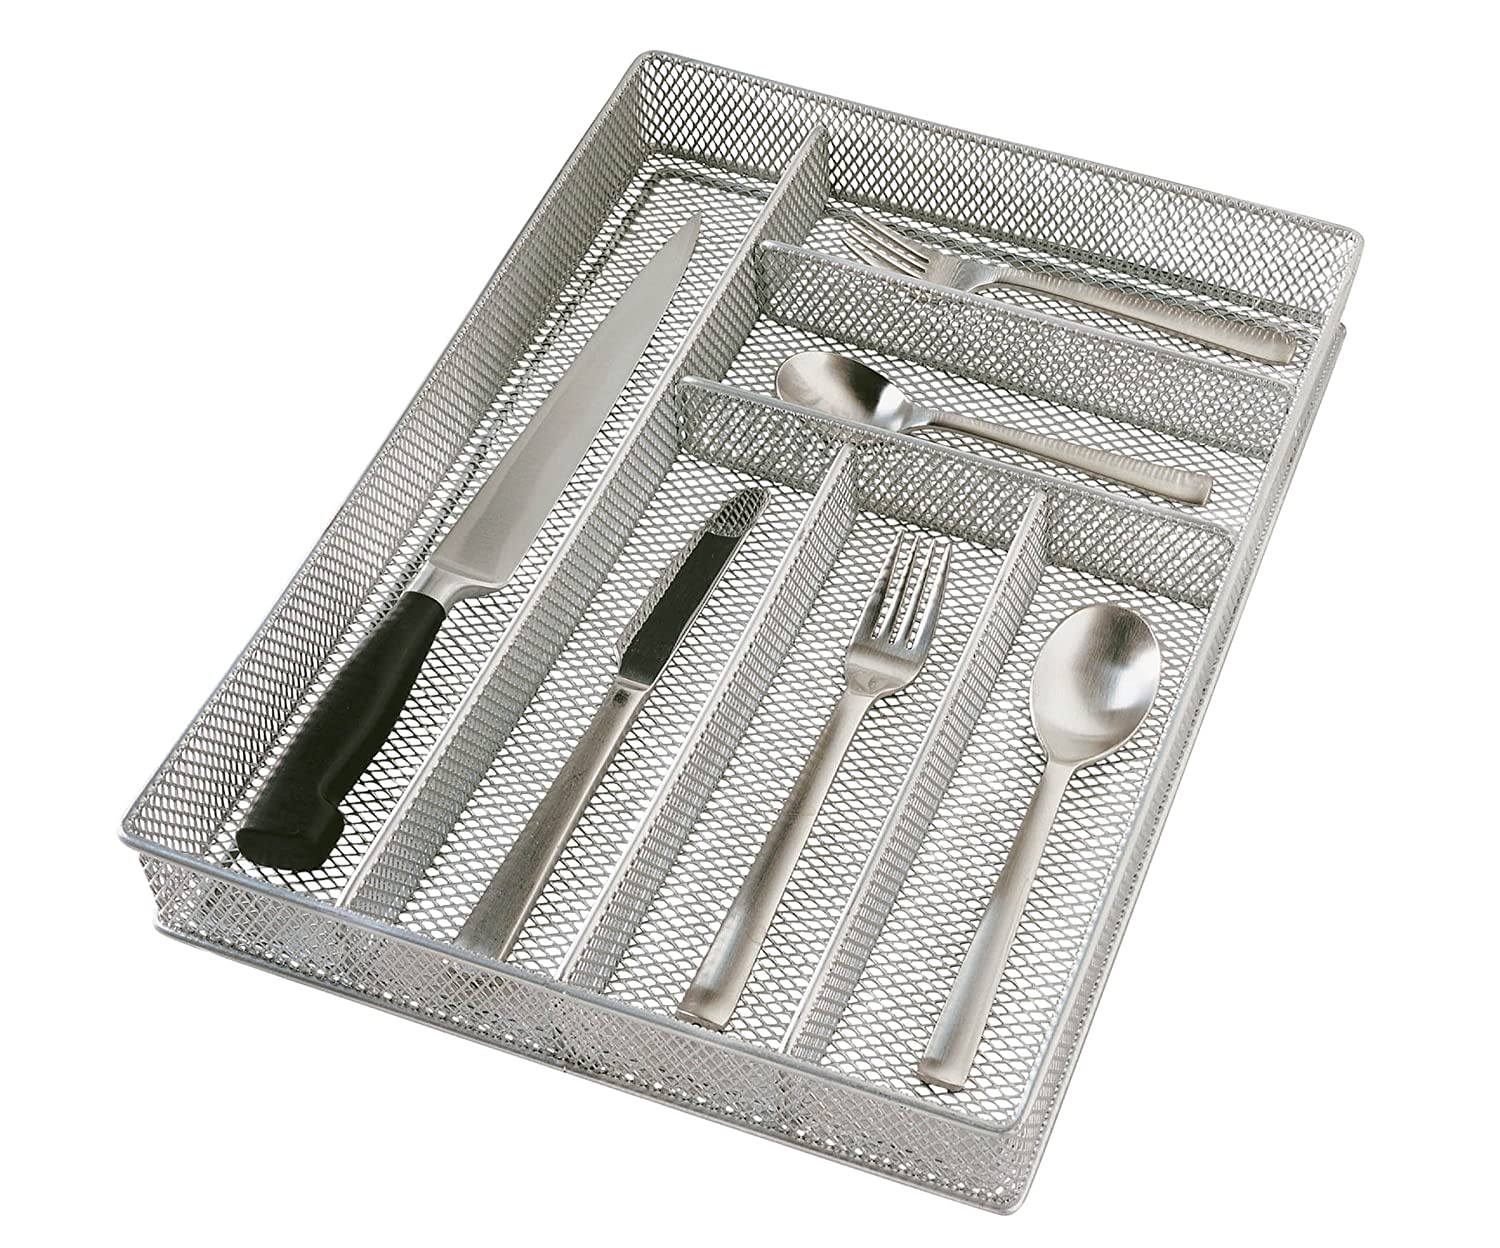 Large Mesh 6-Part In-Drawer Utensil Organizer